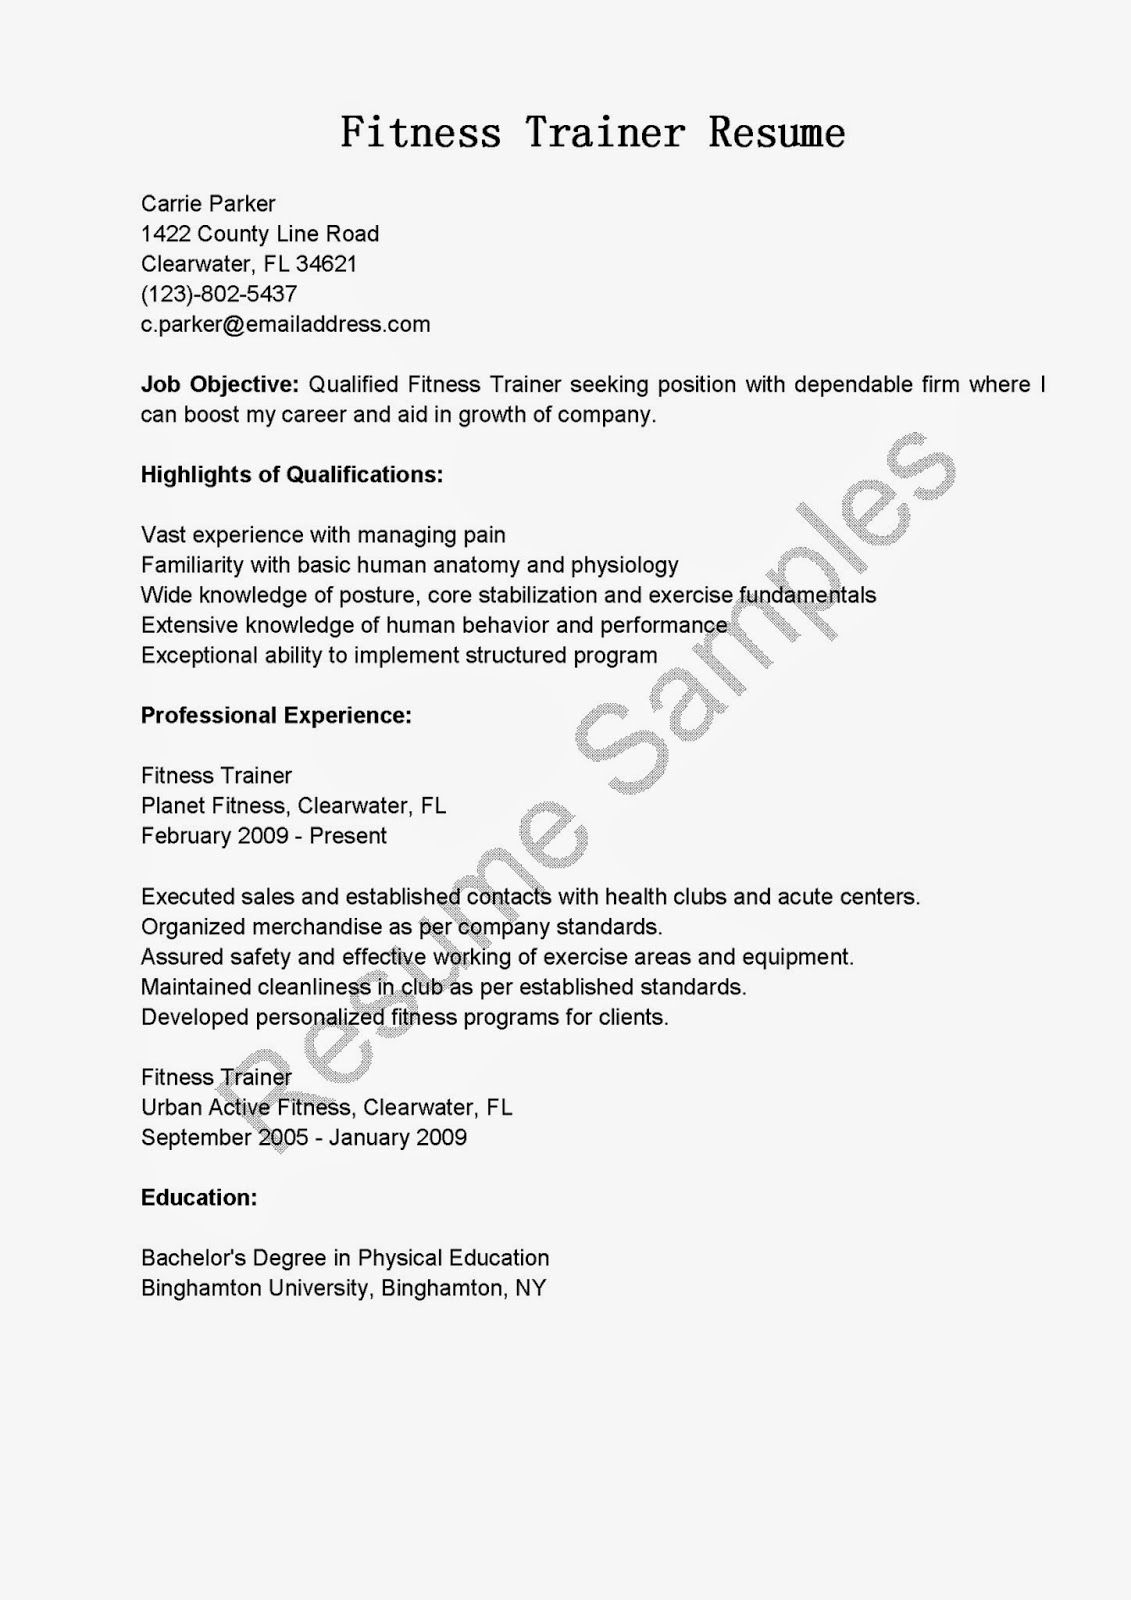 Resume Samples Fitness Trainer Resume Sample Inspiration Sports